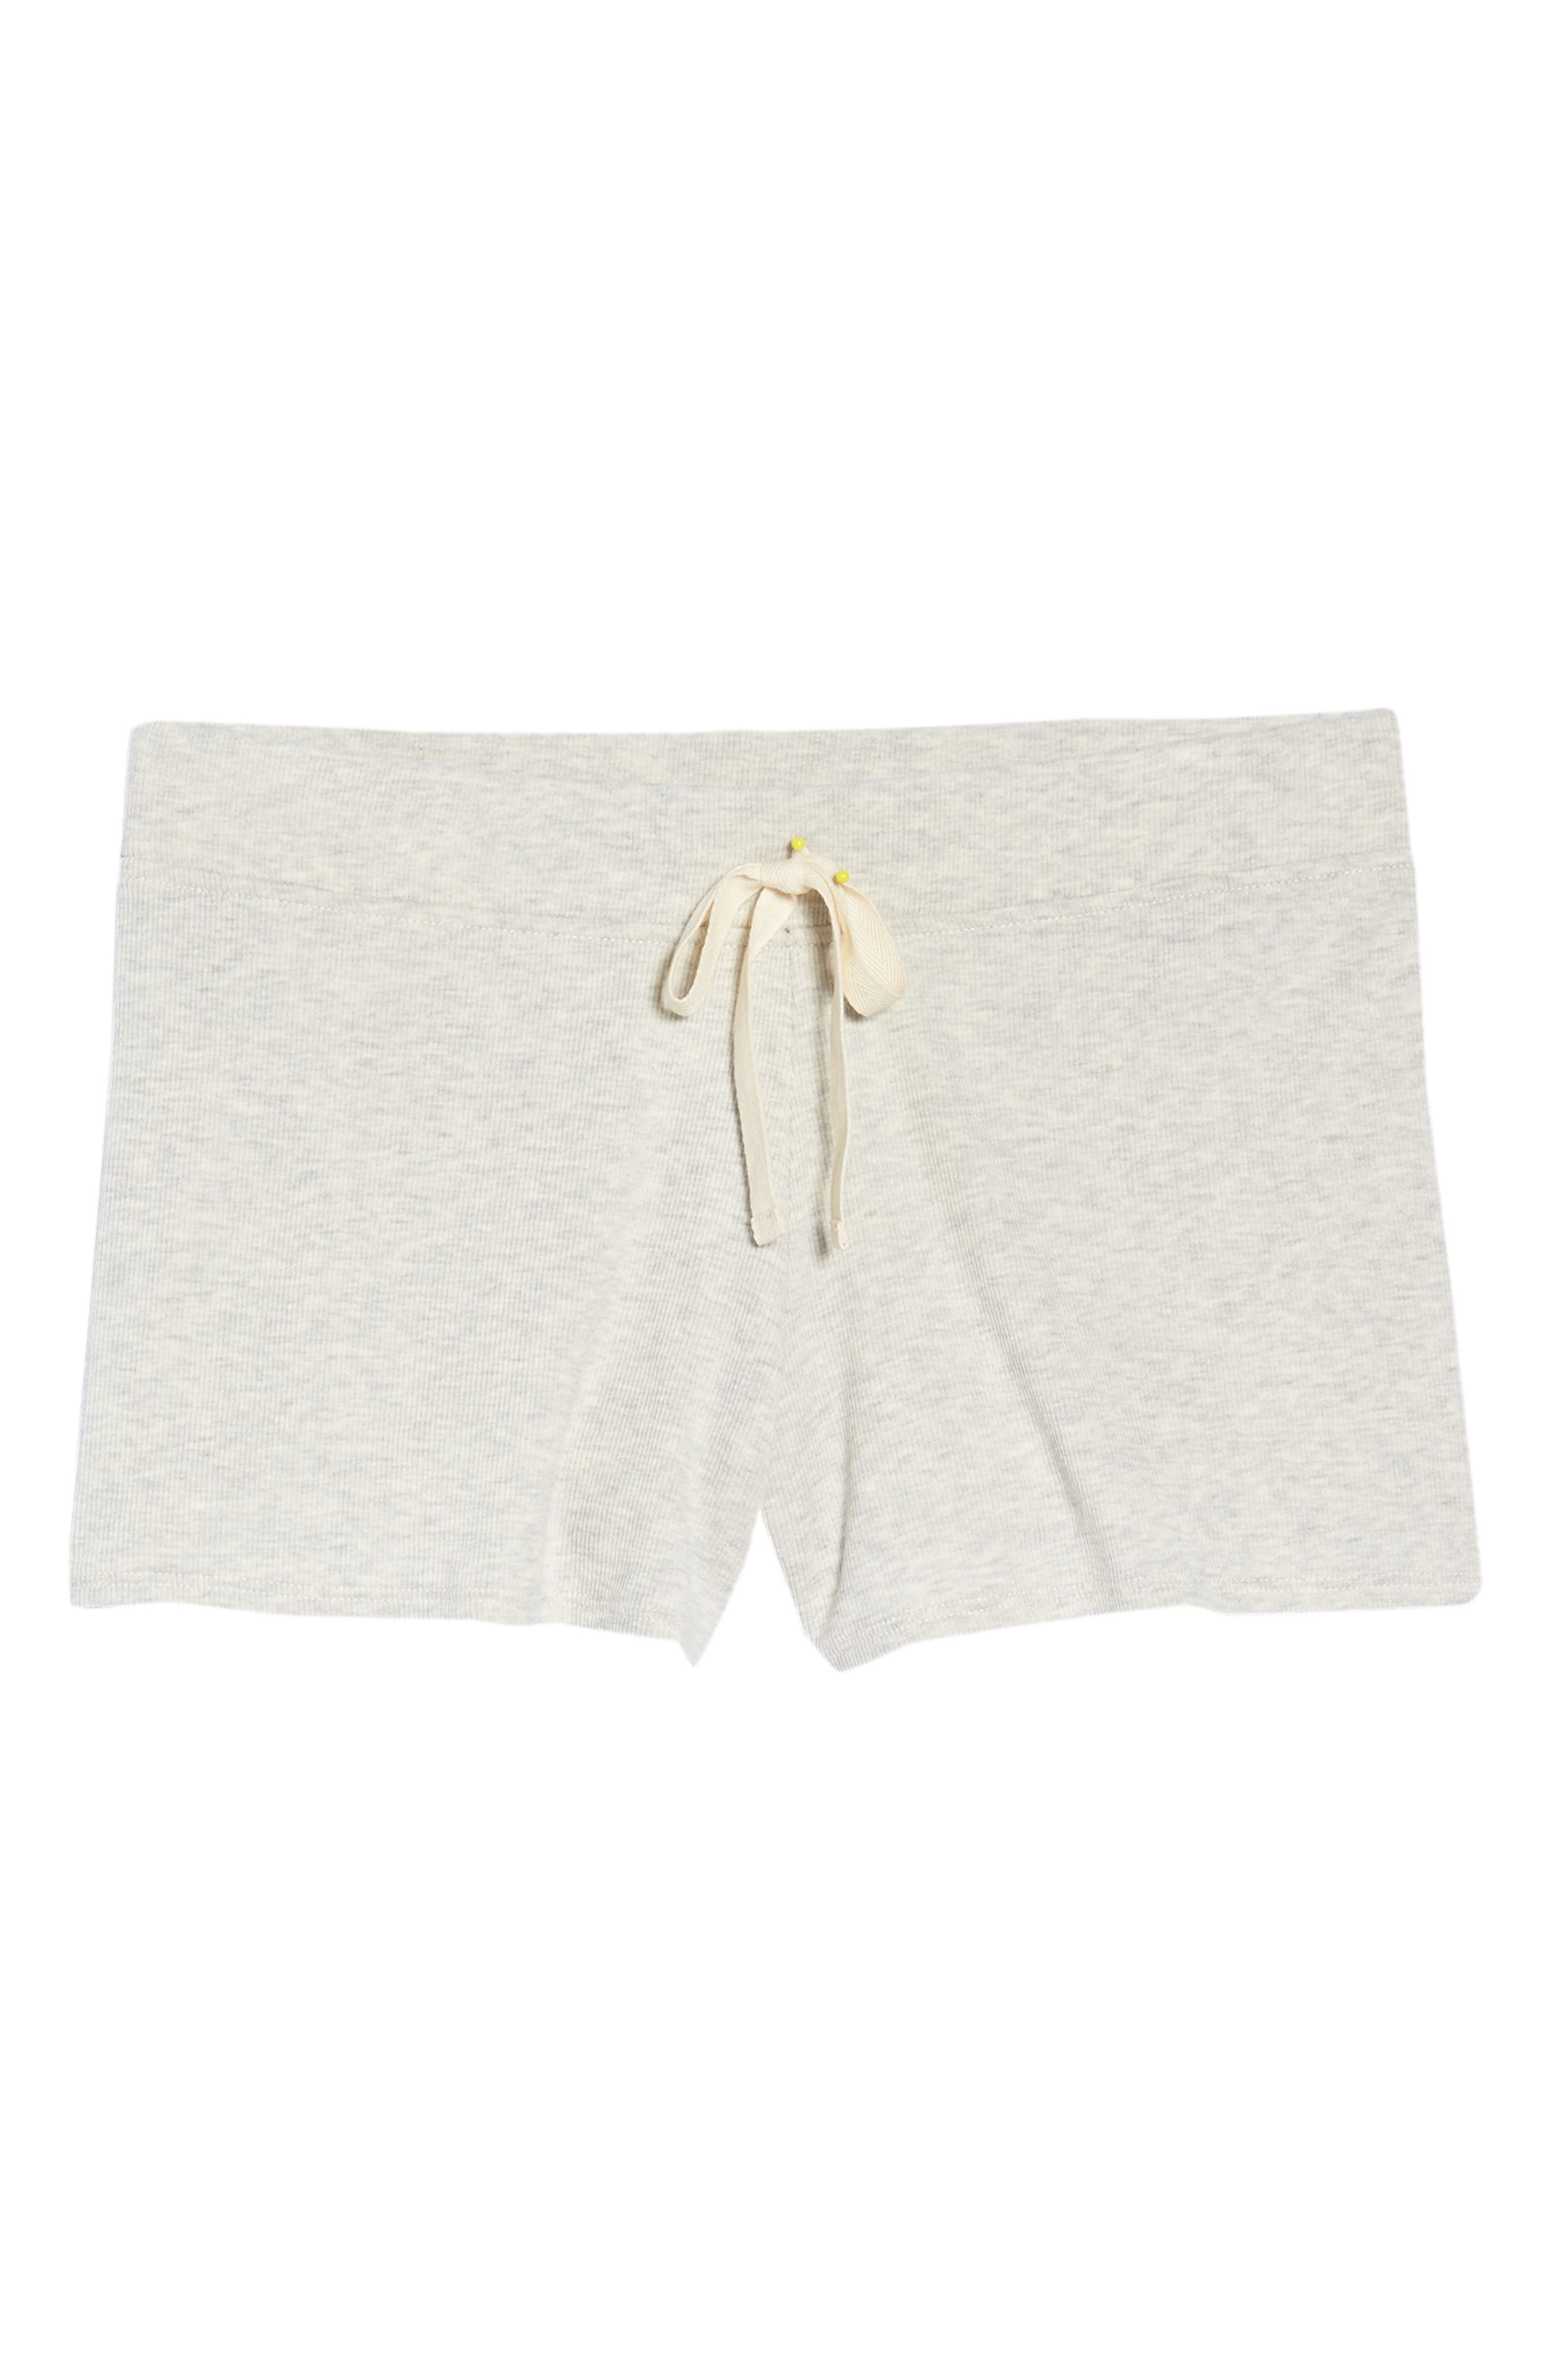 Daydream Lounge Shorts,                             Alternate thumbnail 7, color,                             Grey Heather